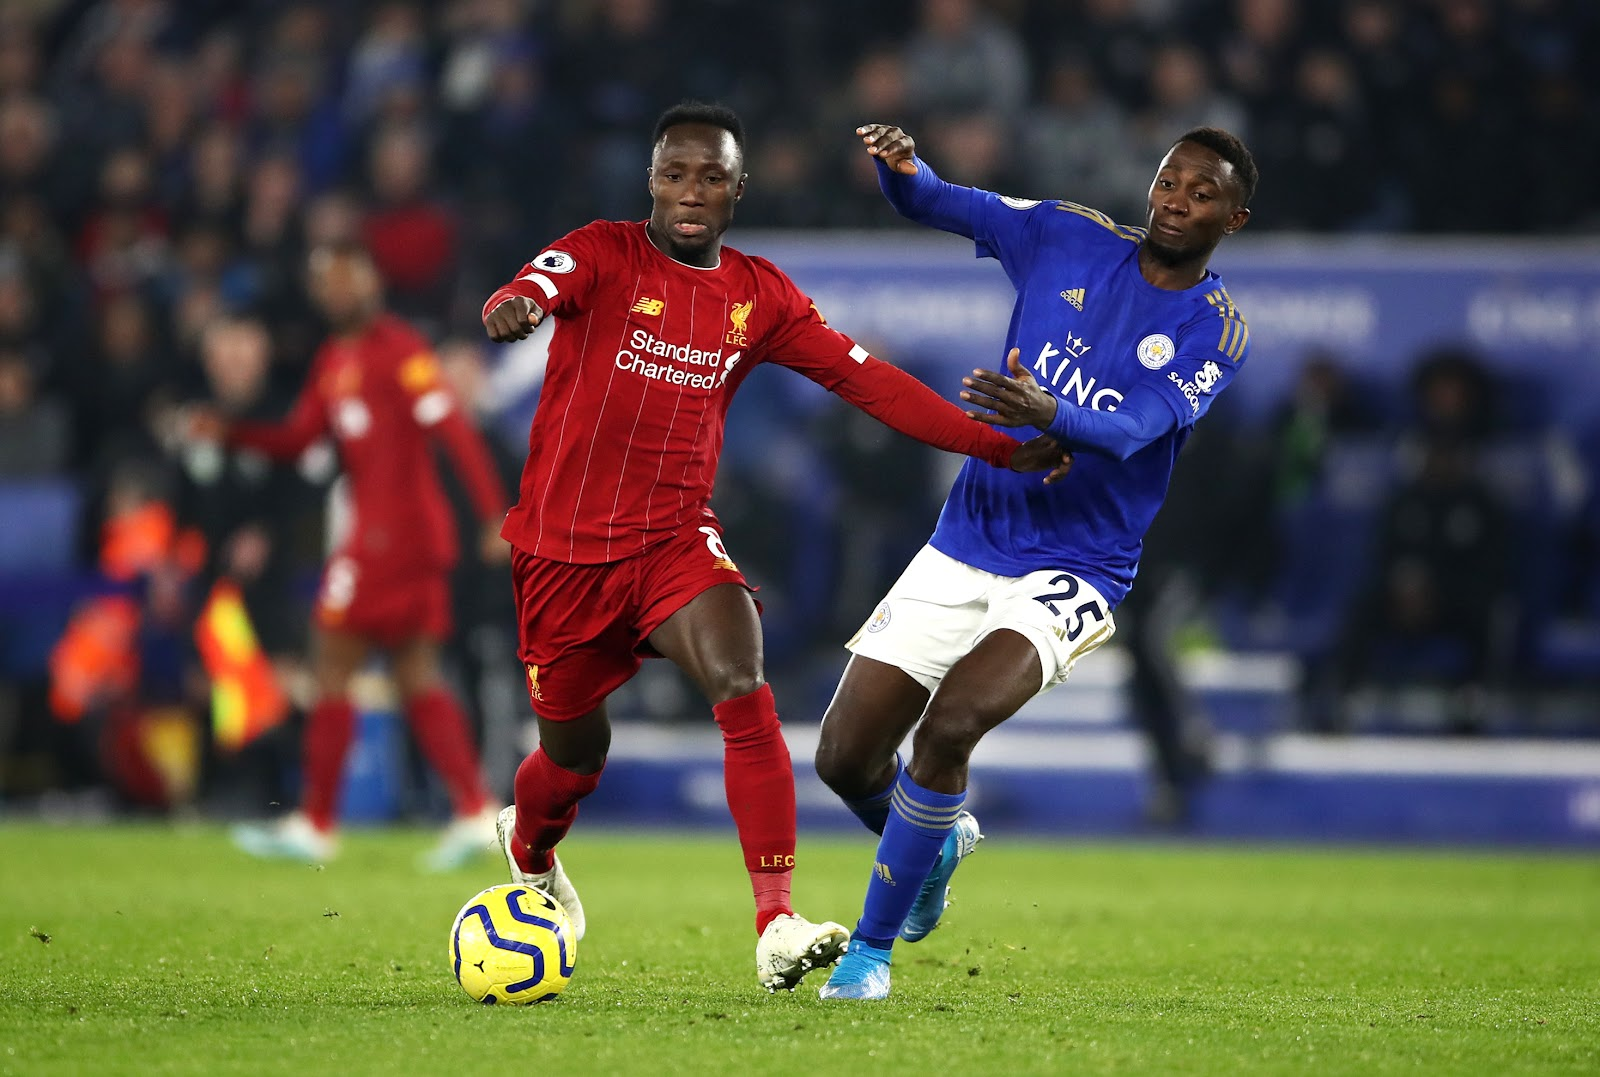 Catch Exciting SuperSport Premier League Matches on DStv